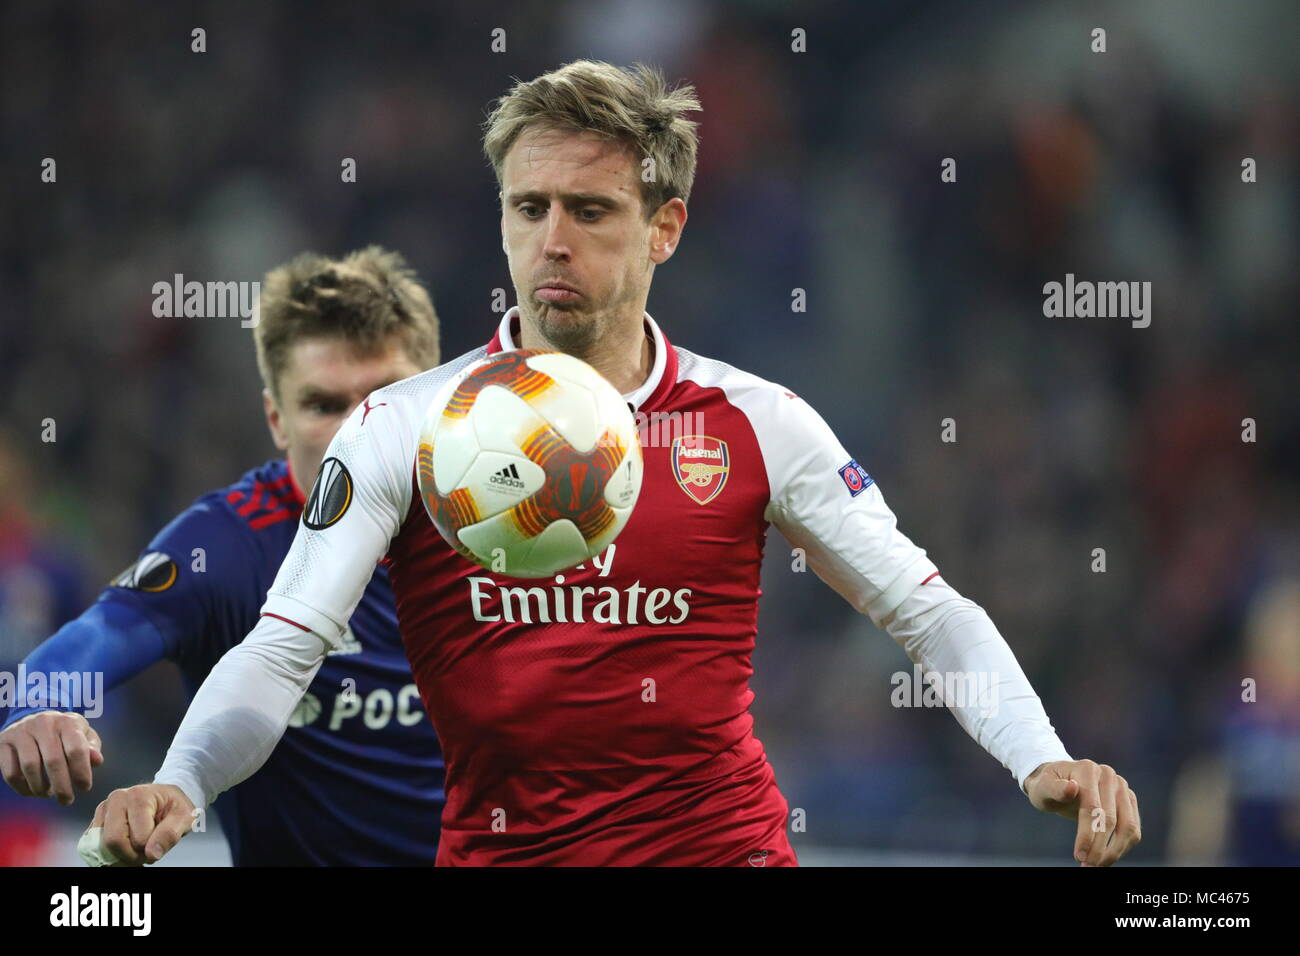 Moscow, Russia. 12th Apr, 2018. MOSCOW, RUSSIA - APRIL 12, 2018: Arsenal F.C.'s Jack Wilshere in action in the 2017-2018 UEFA Europa League quarterfinal second leg football match against CSKA Moscow at VEB Arena (Arena CSKA). The game ended in a 2-2 draw. Sergei Bobylev/TASS Credit: ITAR-TASS News Agency/Alamy Live News - Stock Image